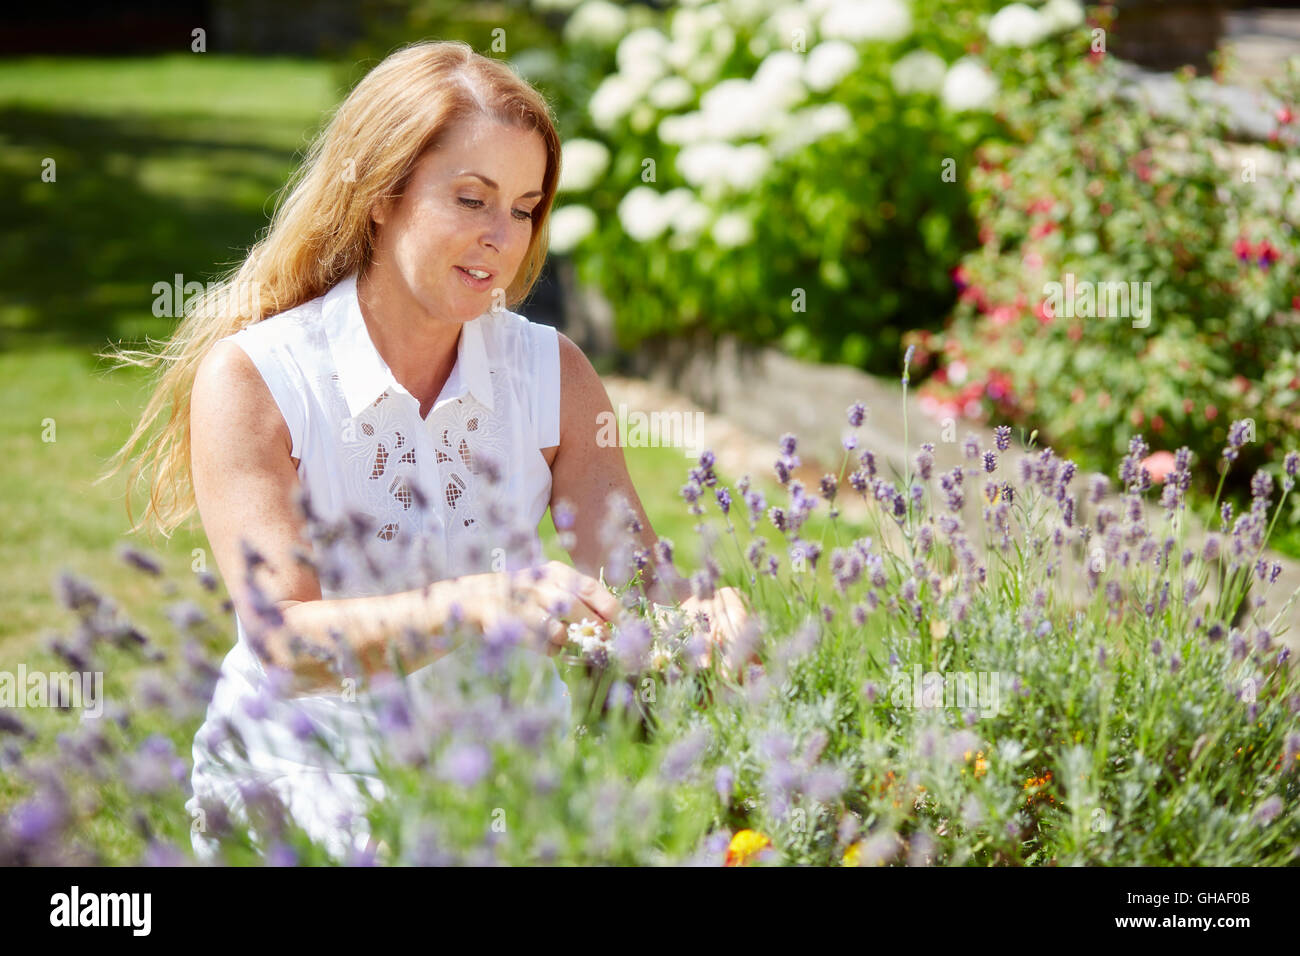 Woman trimming flowers outdoors - Stock Image